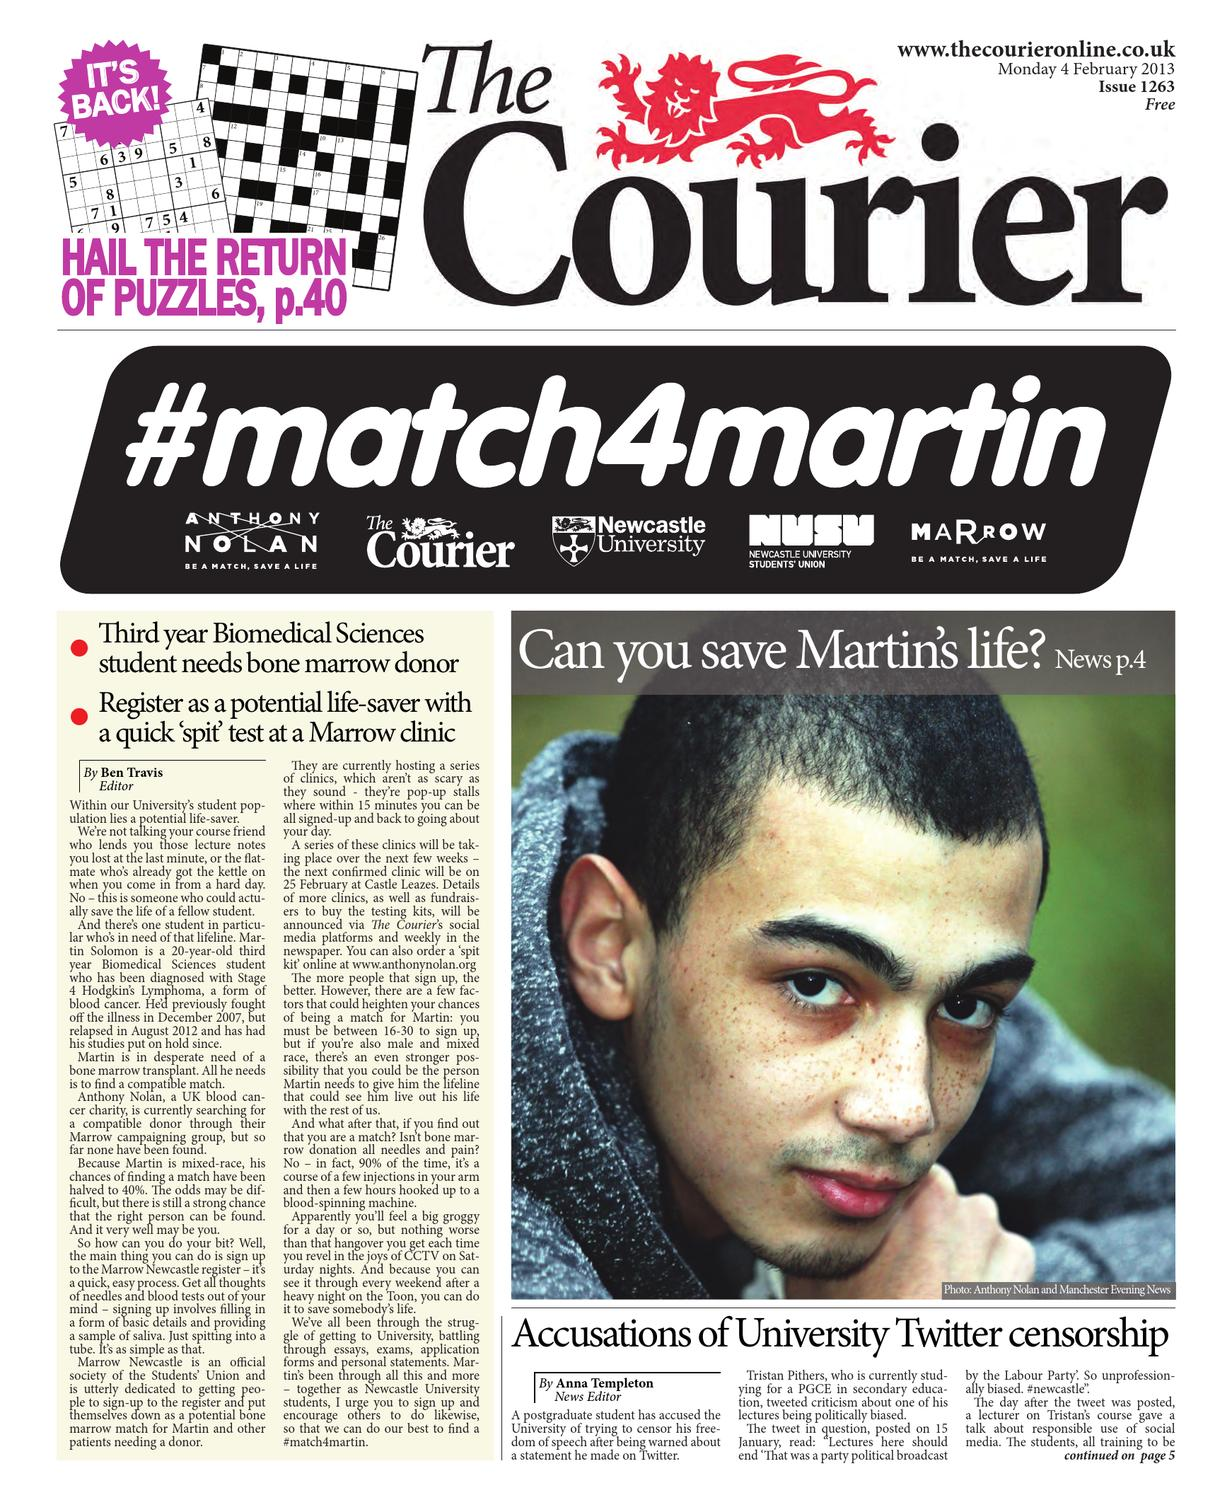 ce11f39ee76 The Courier 1263 by The Courier Online - issuu